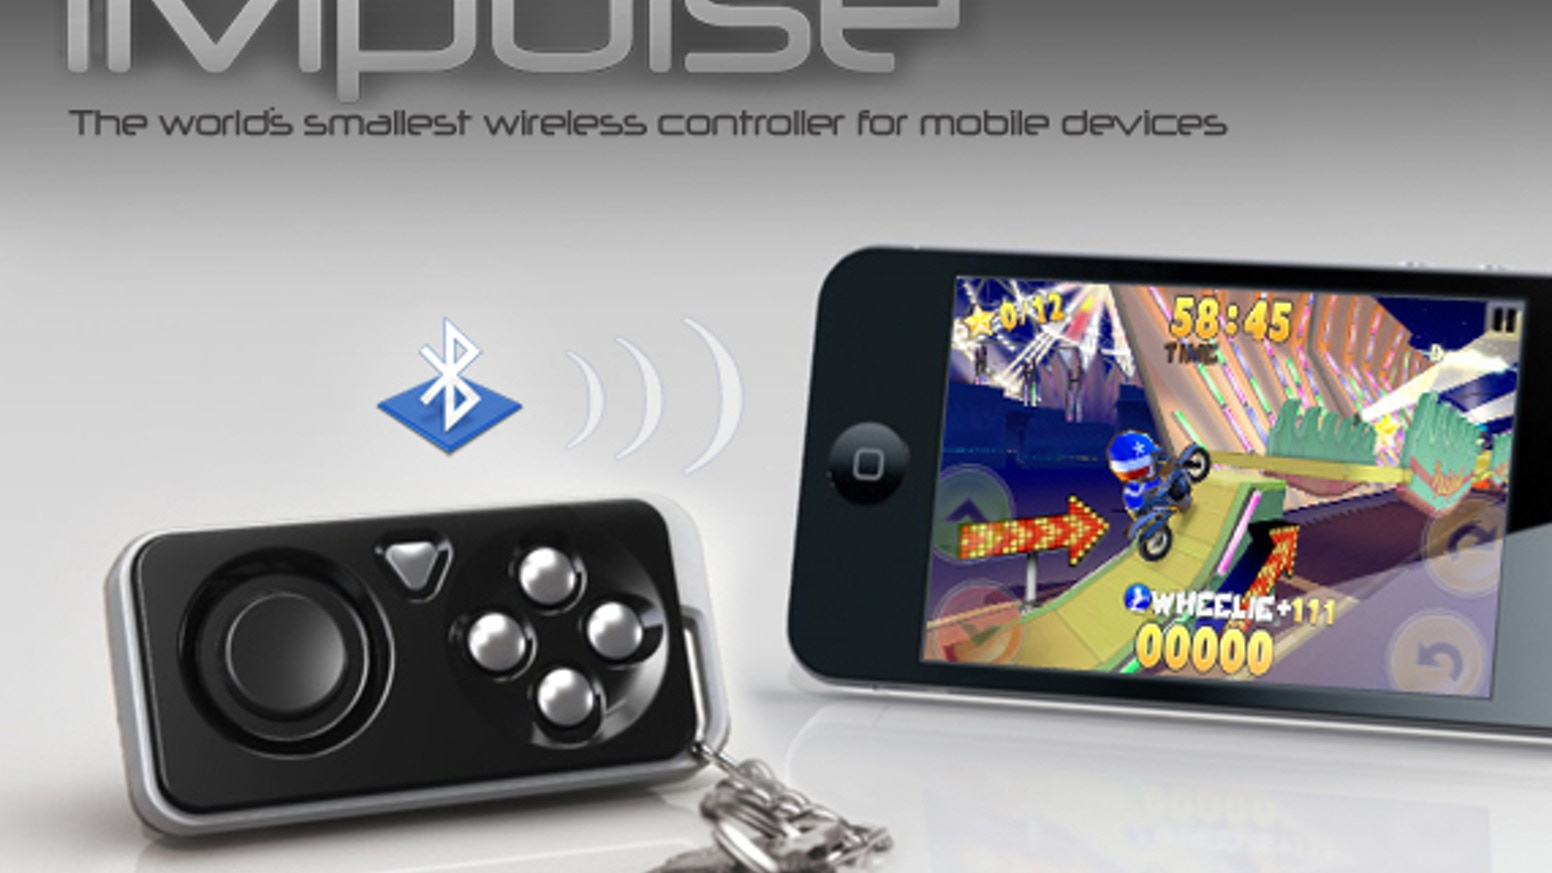 iMpulse Game Controller & Key Finder: Pocket Accessory by Black